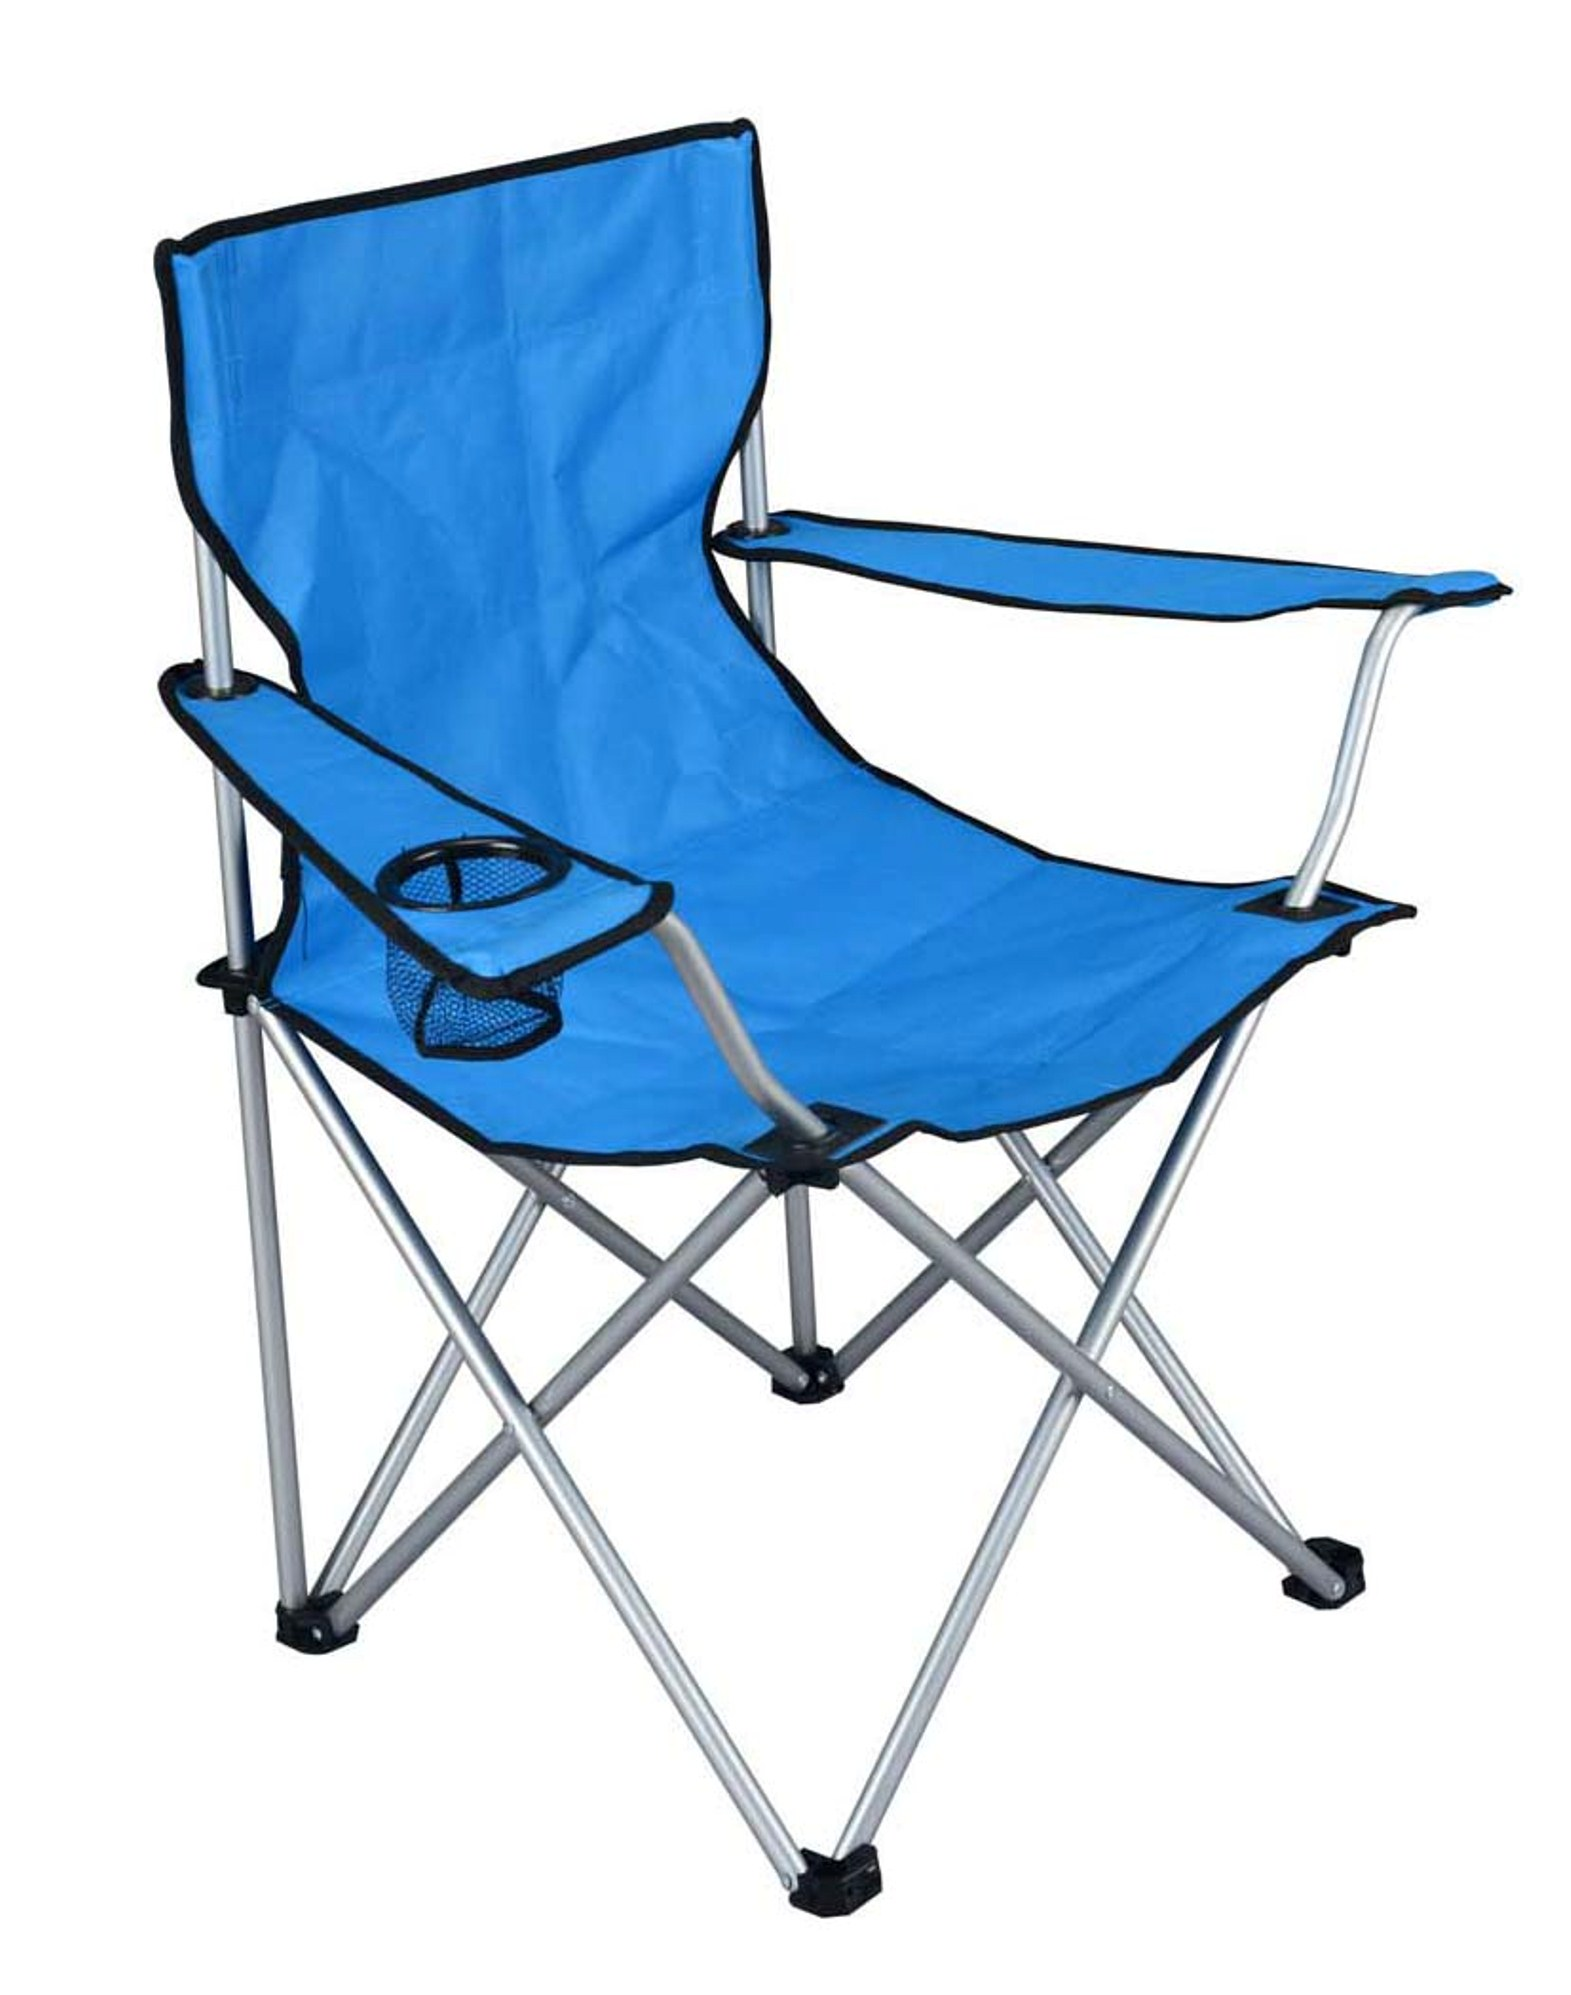 Beach Chair With Cup Holder Camping Beach Chair Seat Cup Holder Fishing Picnic